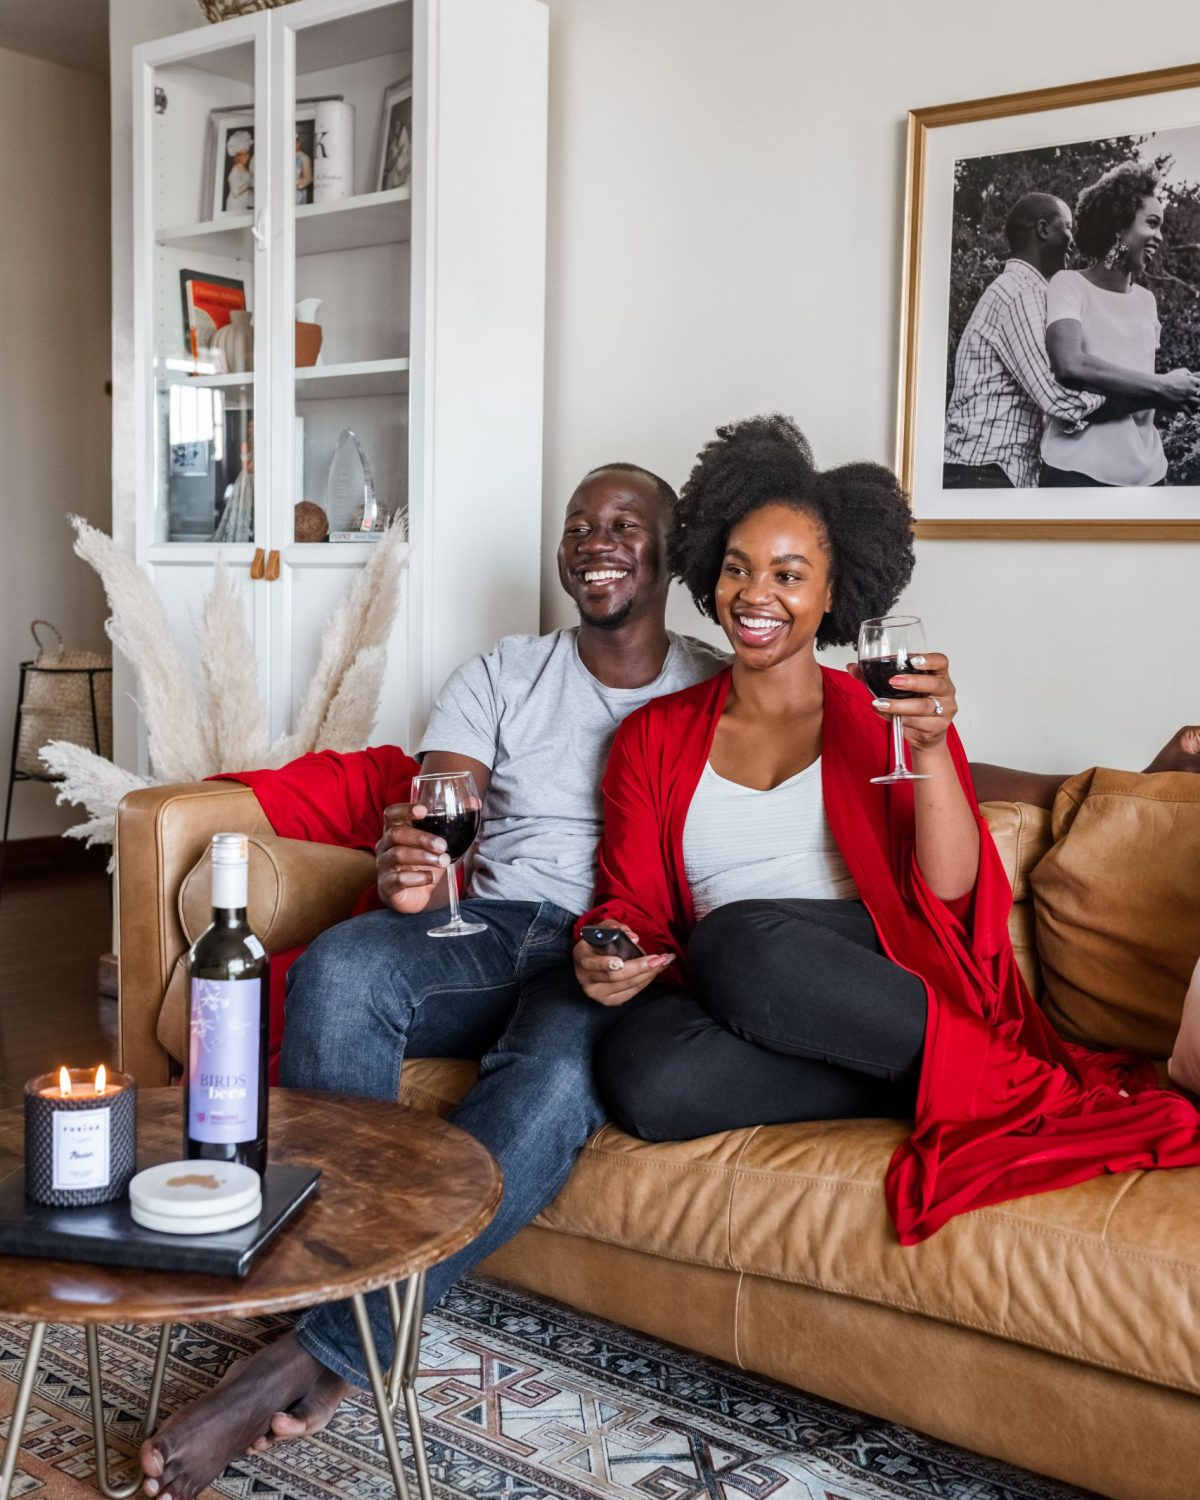 Ijeoma and Jonathan Kola cuddling on couch with wine on Valentine's Day